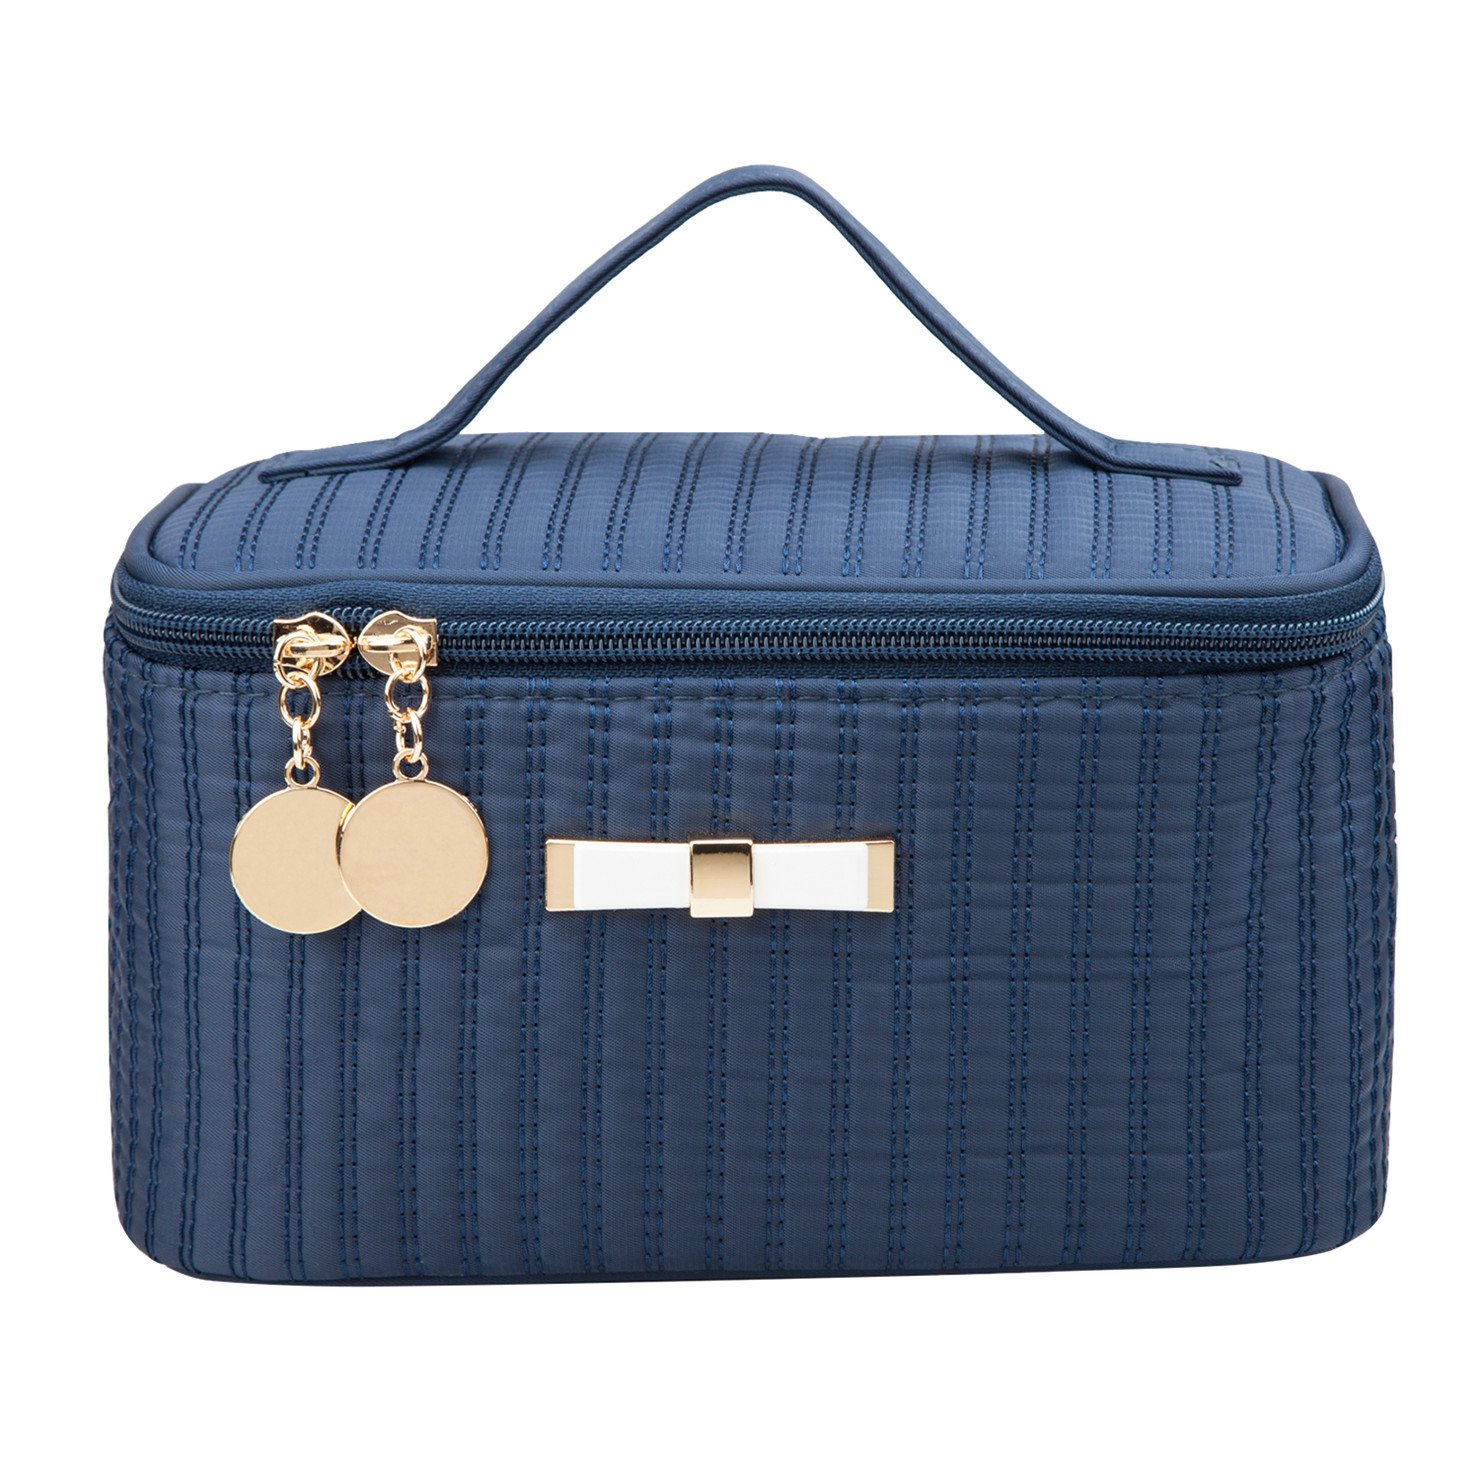 Alsomtec Multi-function Makeup Cosmetic Bag single layer with quality zipper travel Makeup Bag Toiletry Travel Kit With mirror (Dark blue)